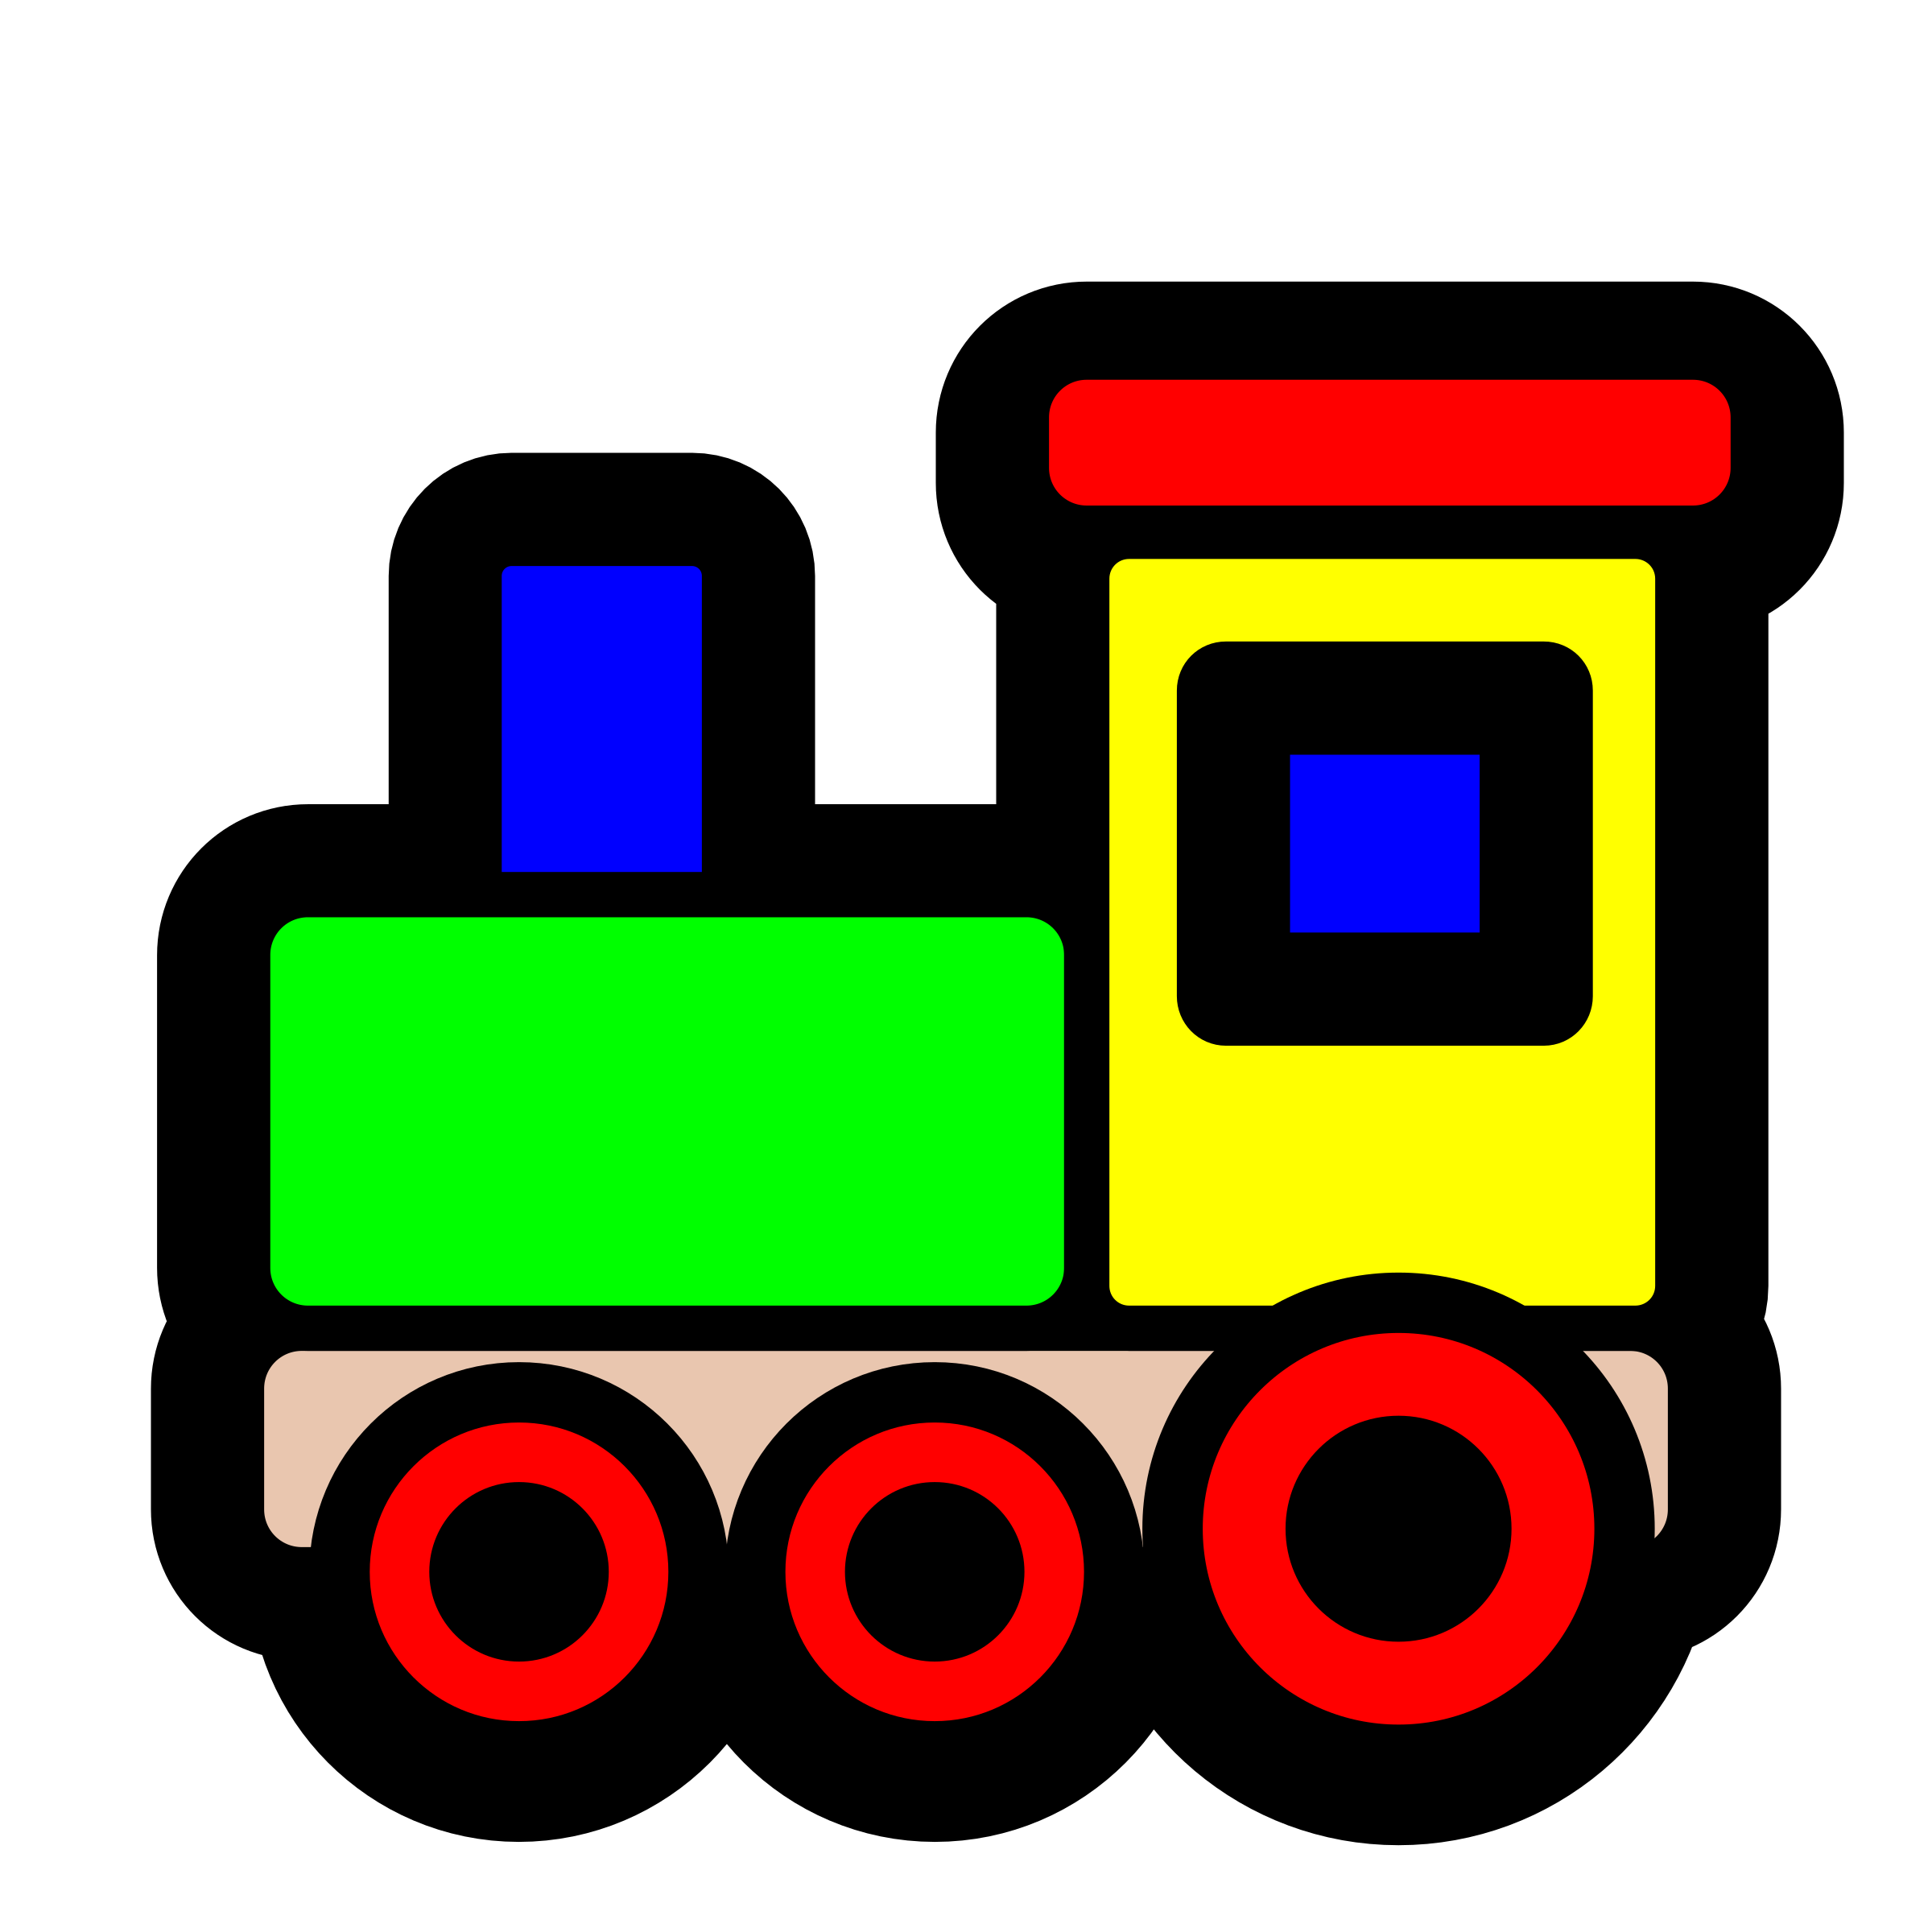 Toy Train Drawing at GetDrawings.com | Free for personal use Toy ...